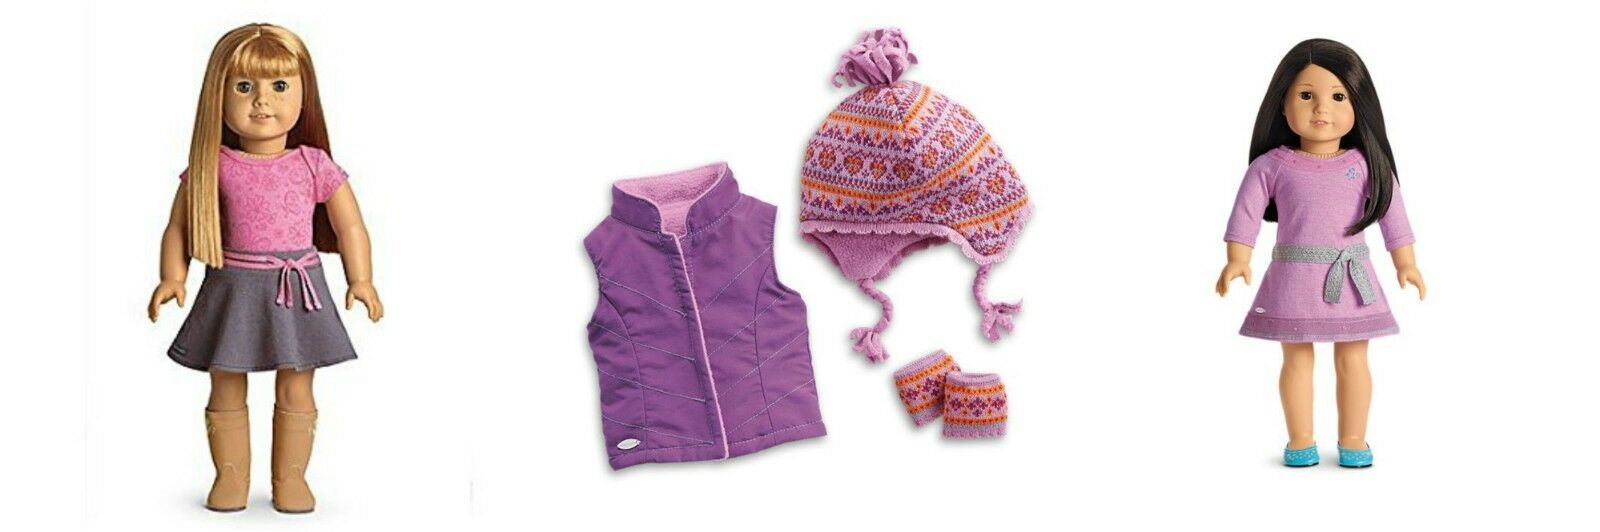 ️ American Girl Doll WARM WINTER  BUNDLE Outfits &ACCESSORIES New in Boxes  ️